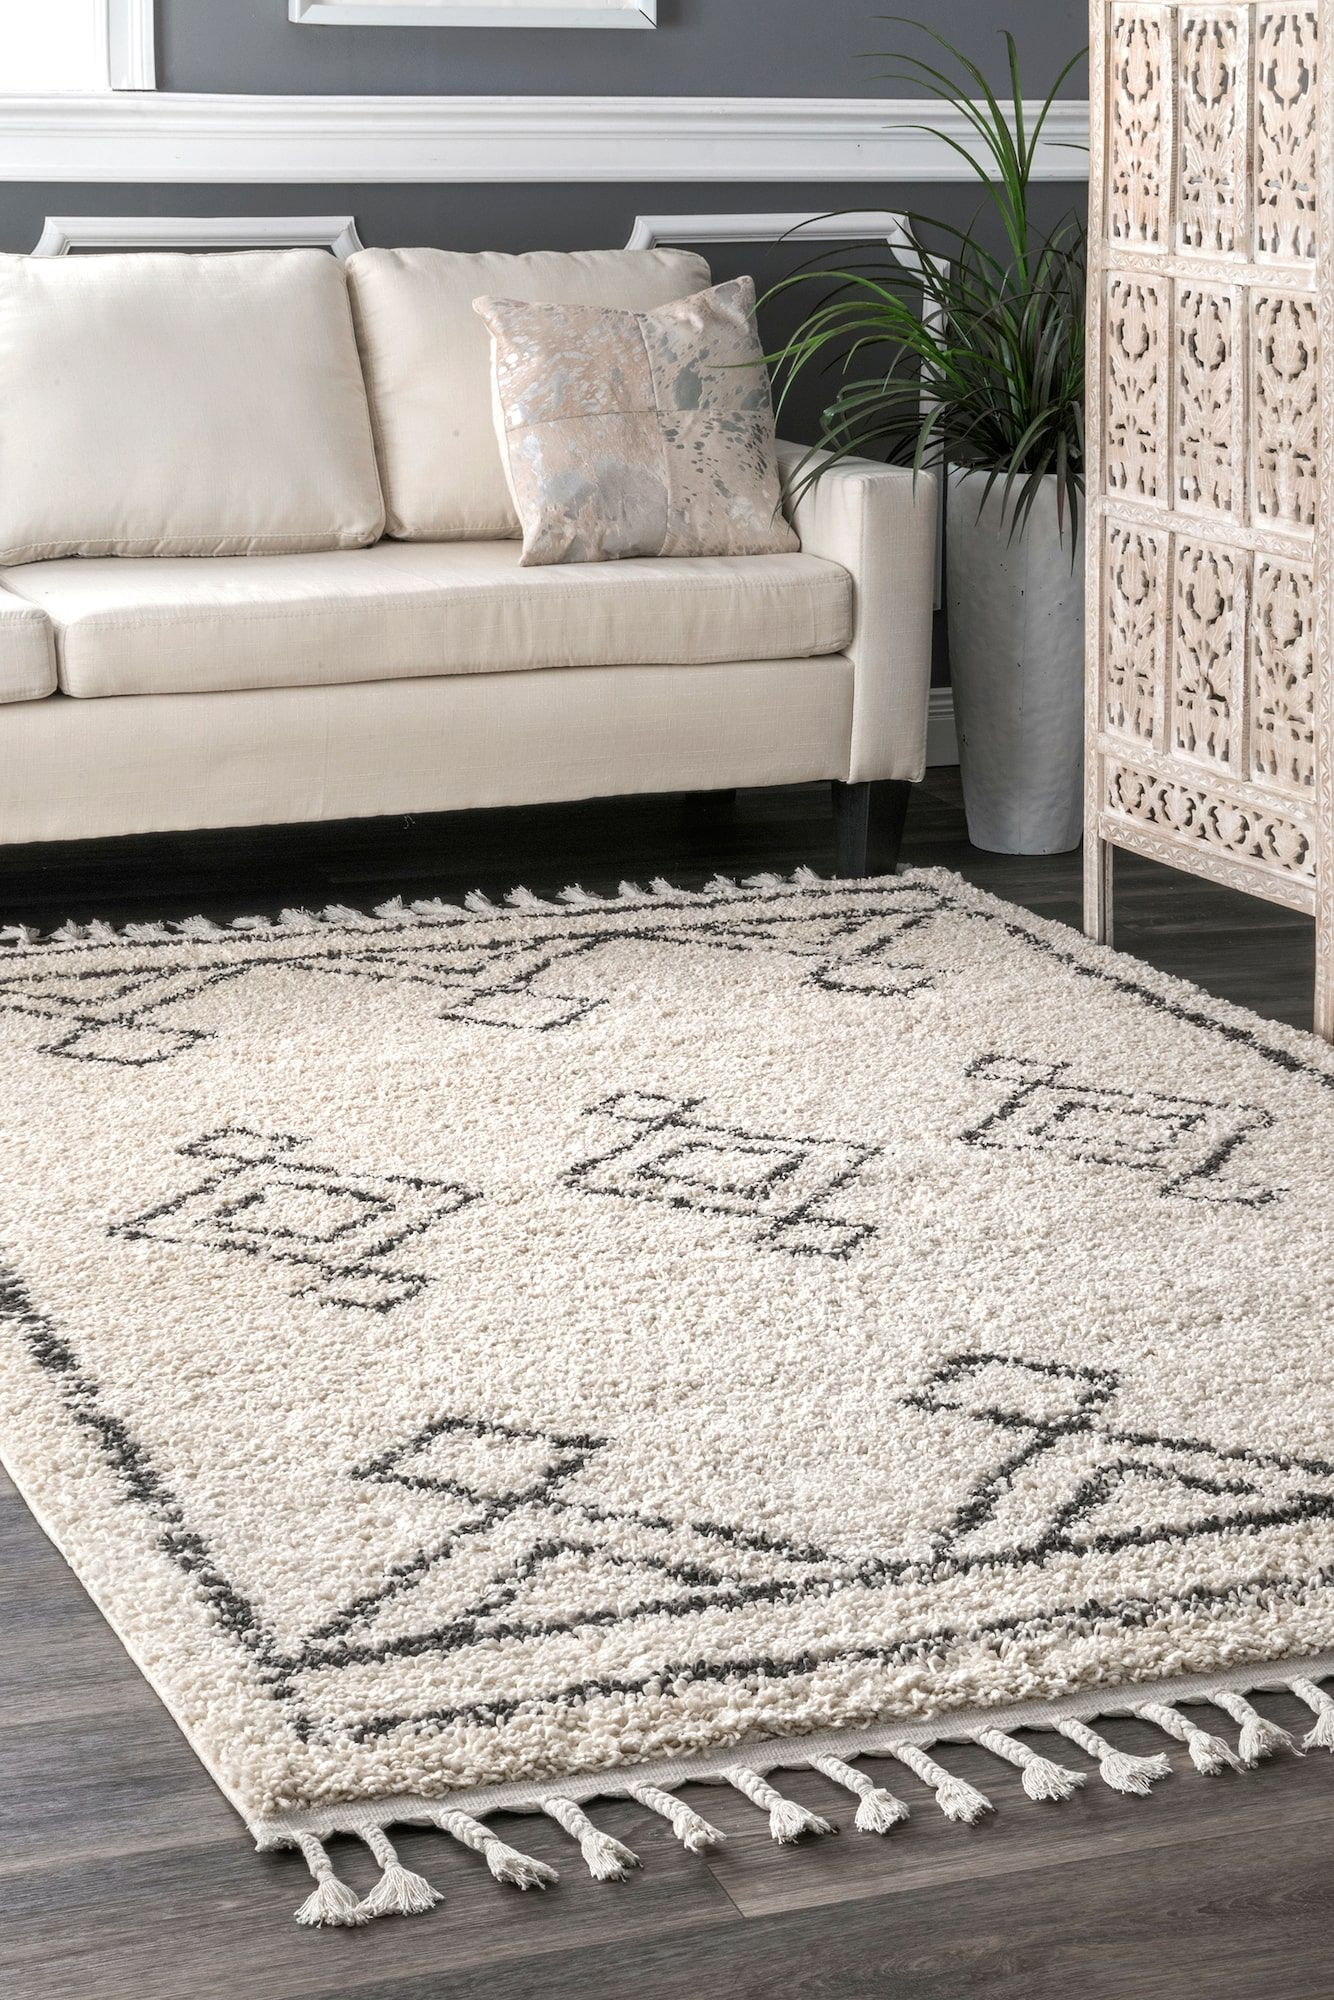 Area Rugs In Many Styles Including Contemporary, Braided, Outdoor And